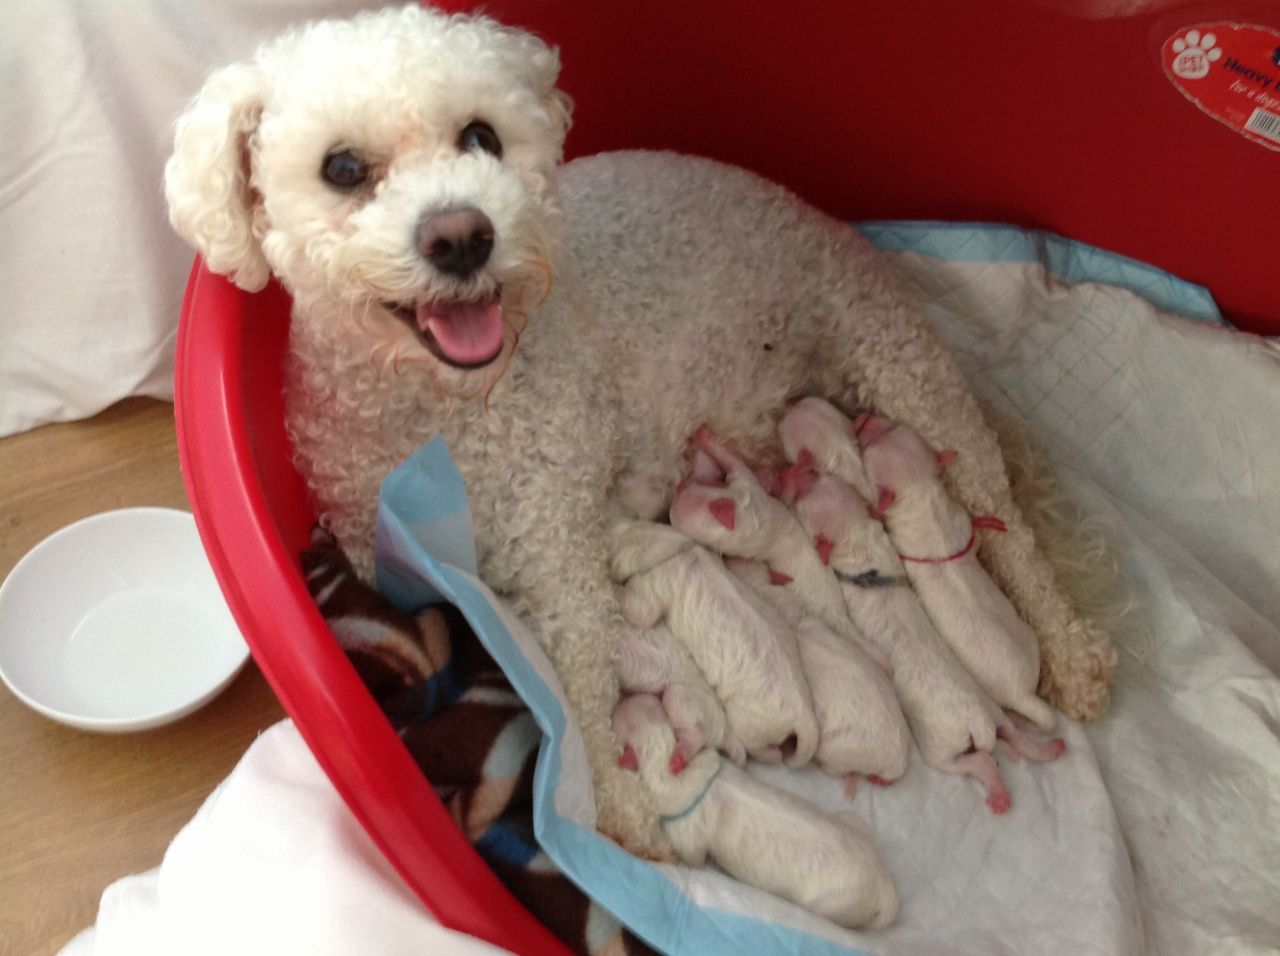 bichon frise puppies bichon frise puppies £ 550 posted 1